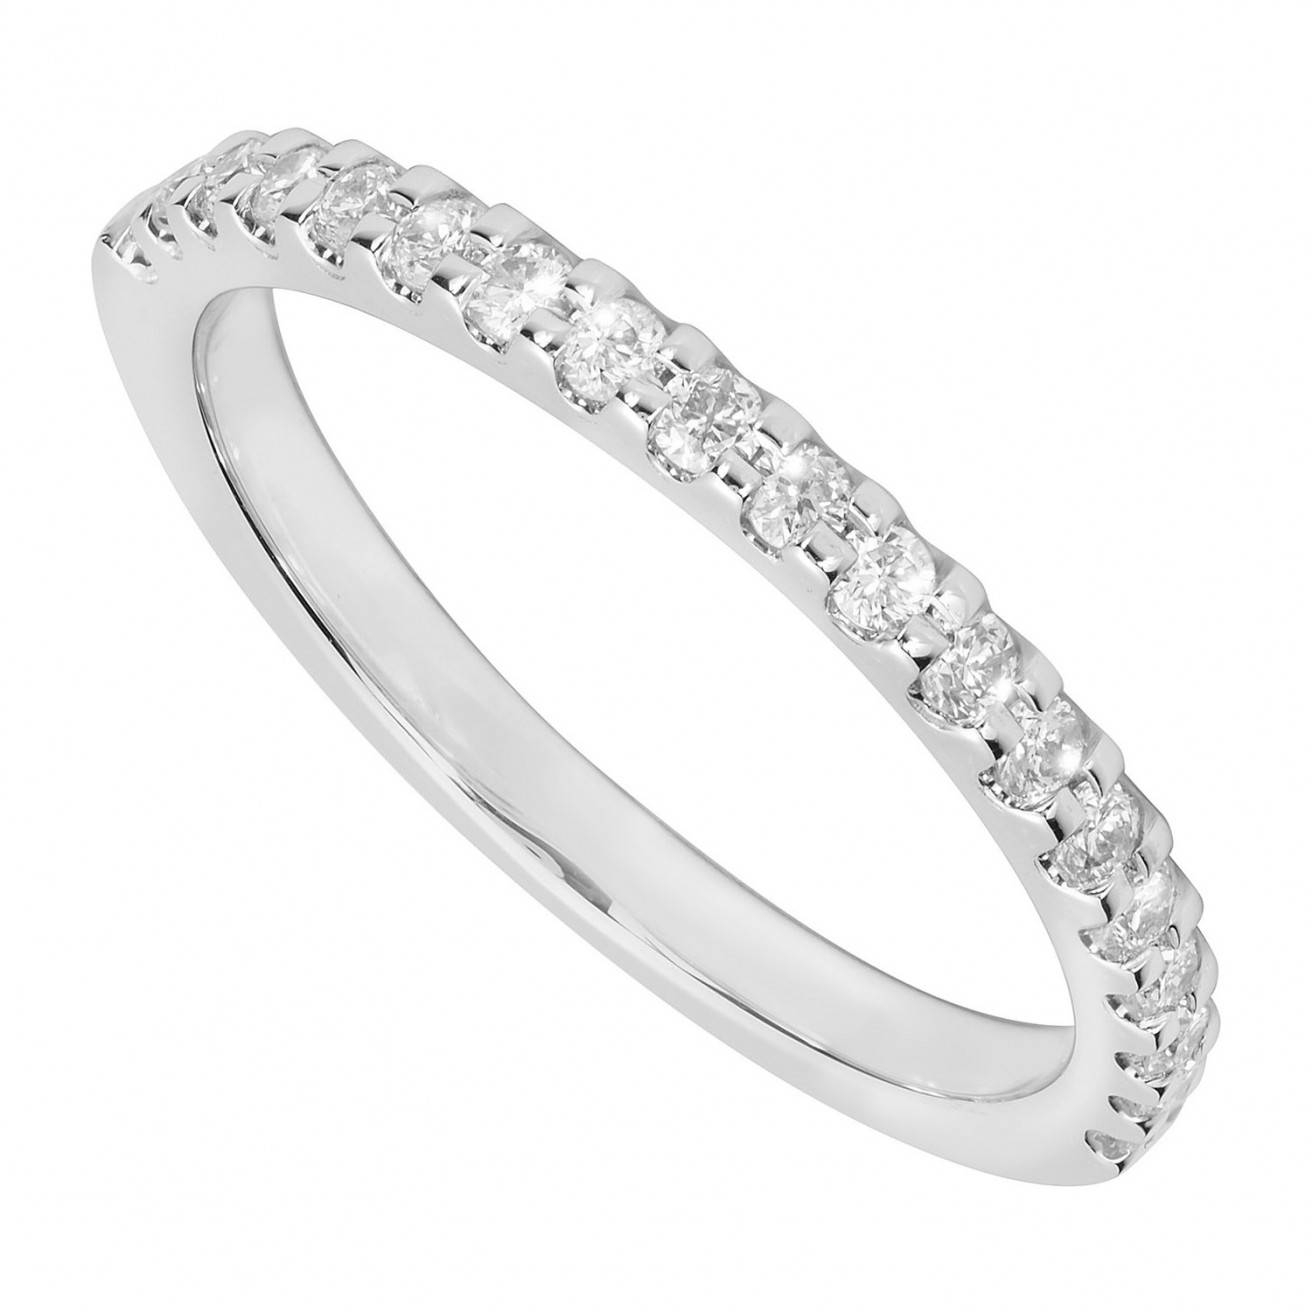 Beautifully Crafted Wedding Rings For Him And Her Inside Diamonds Wedding Rings (View 3 of 15)